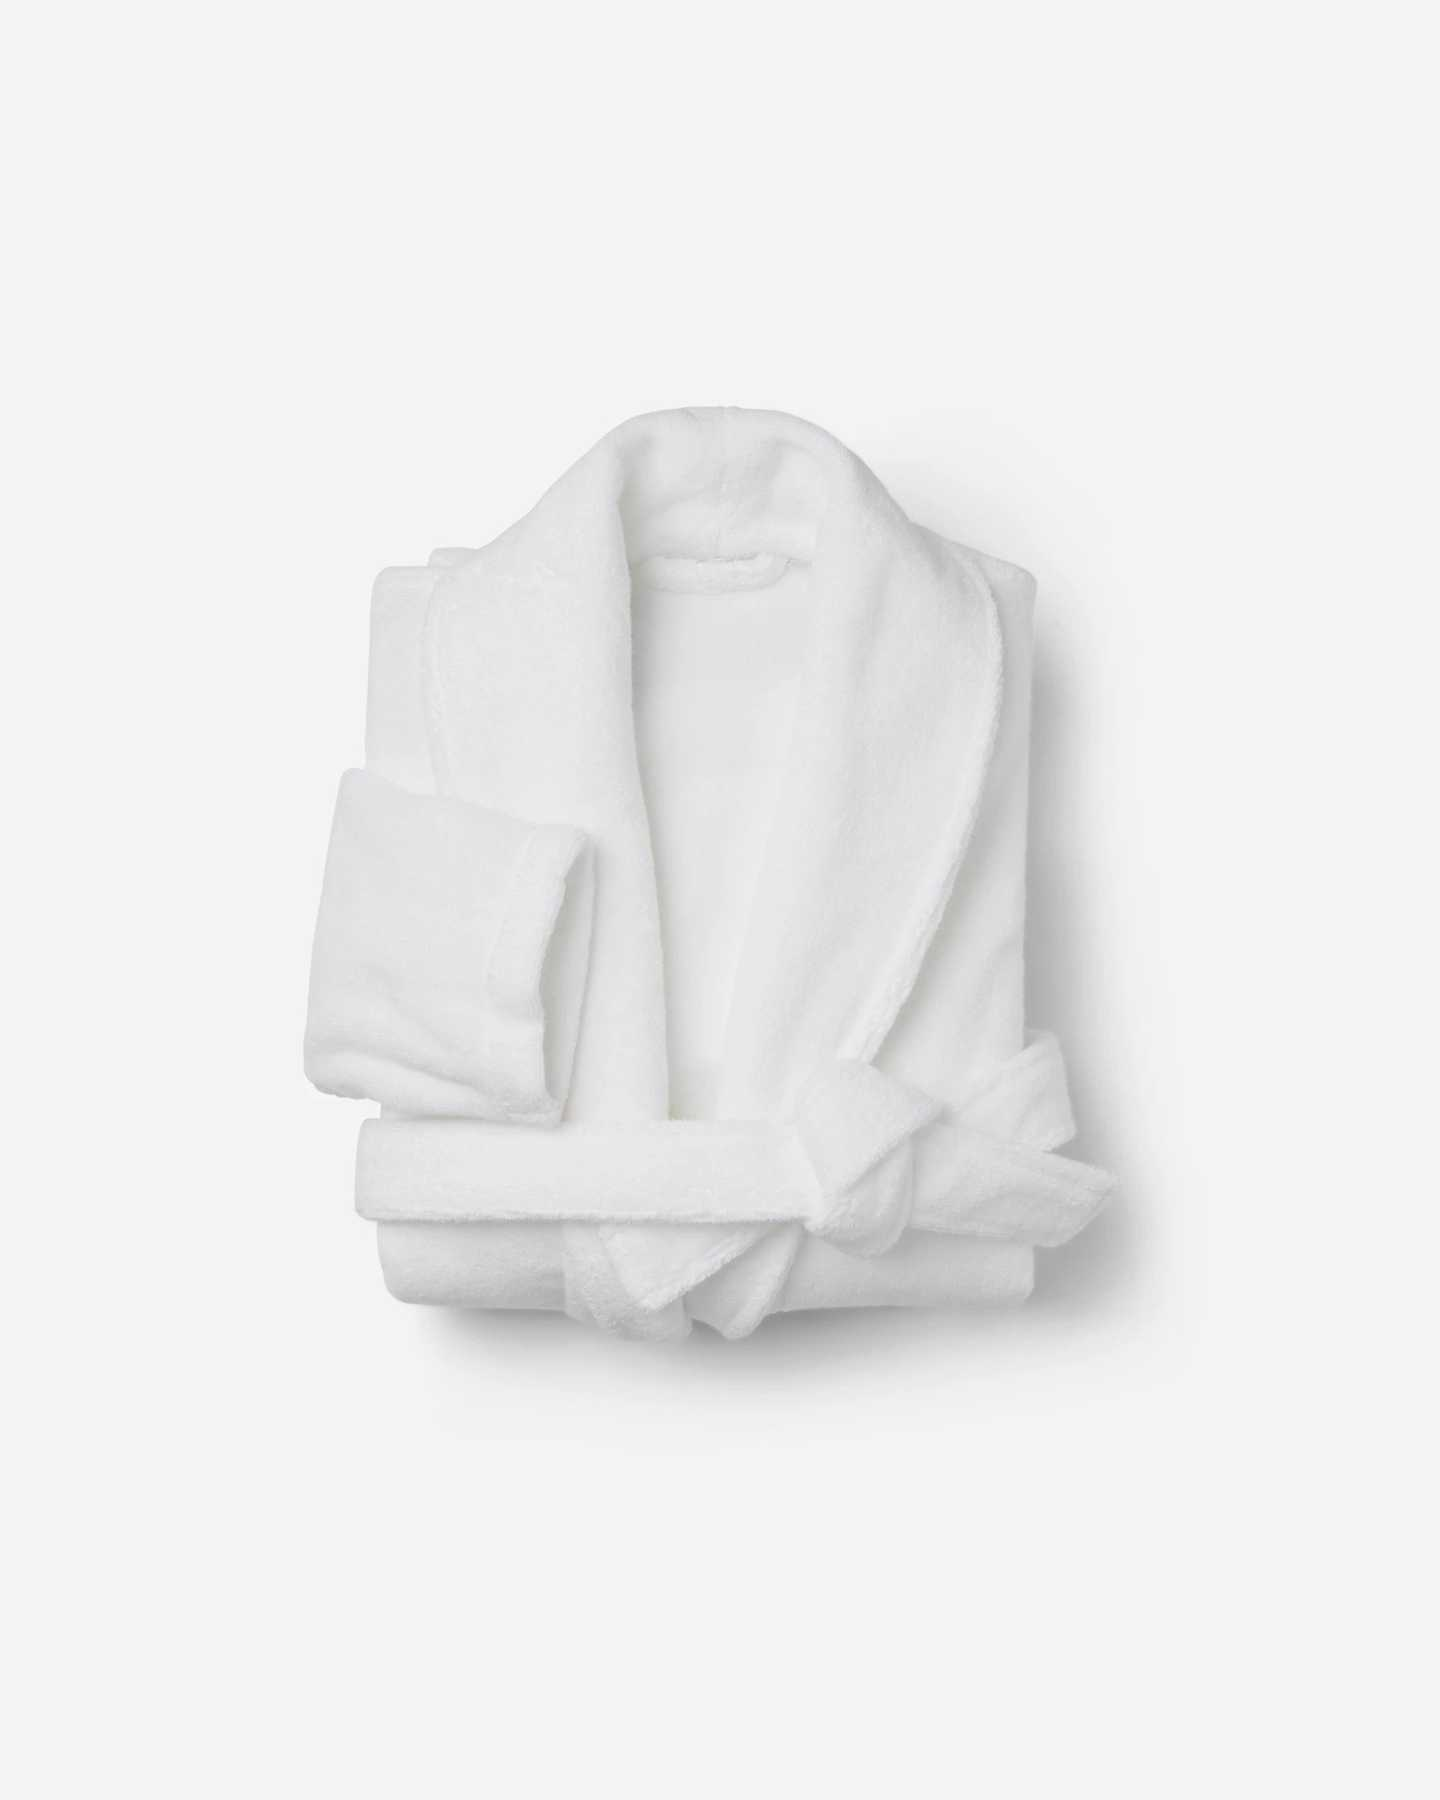 You May Also Like - Luxe Turkish Cotton Bath Robe - White